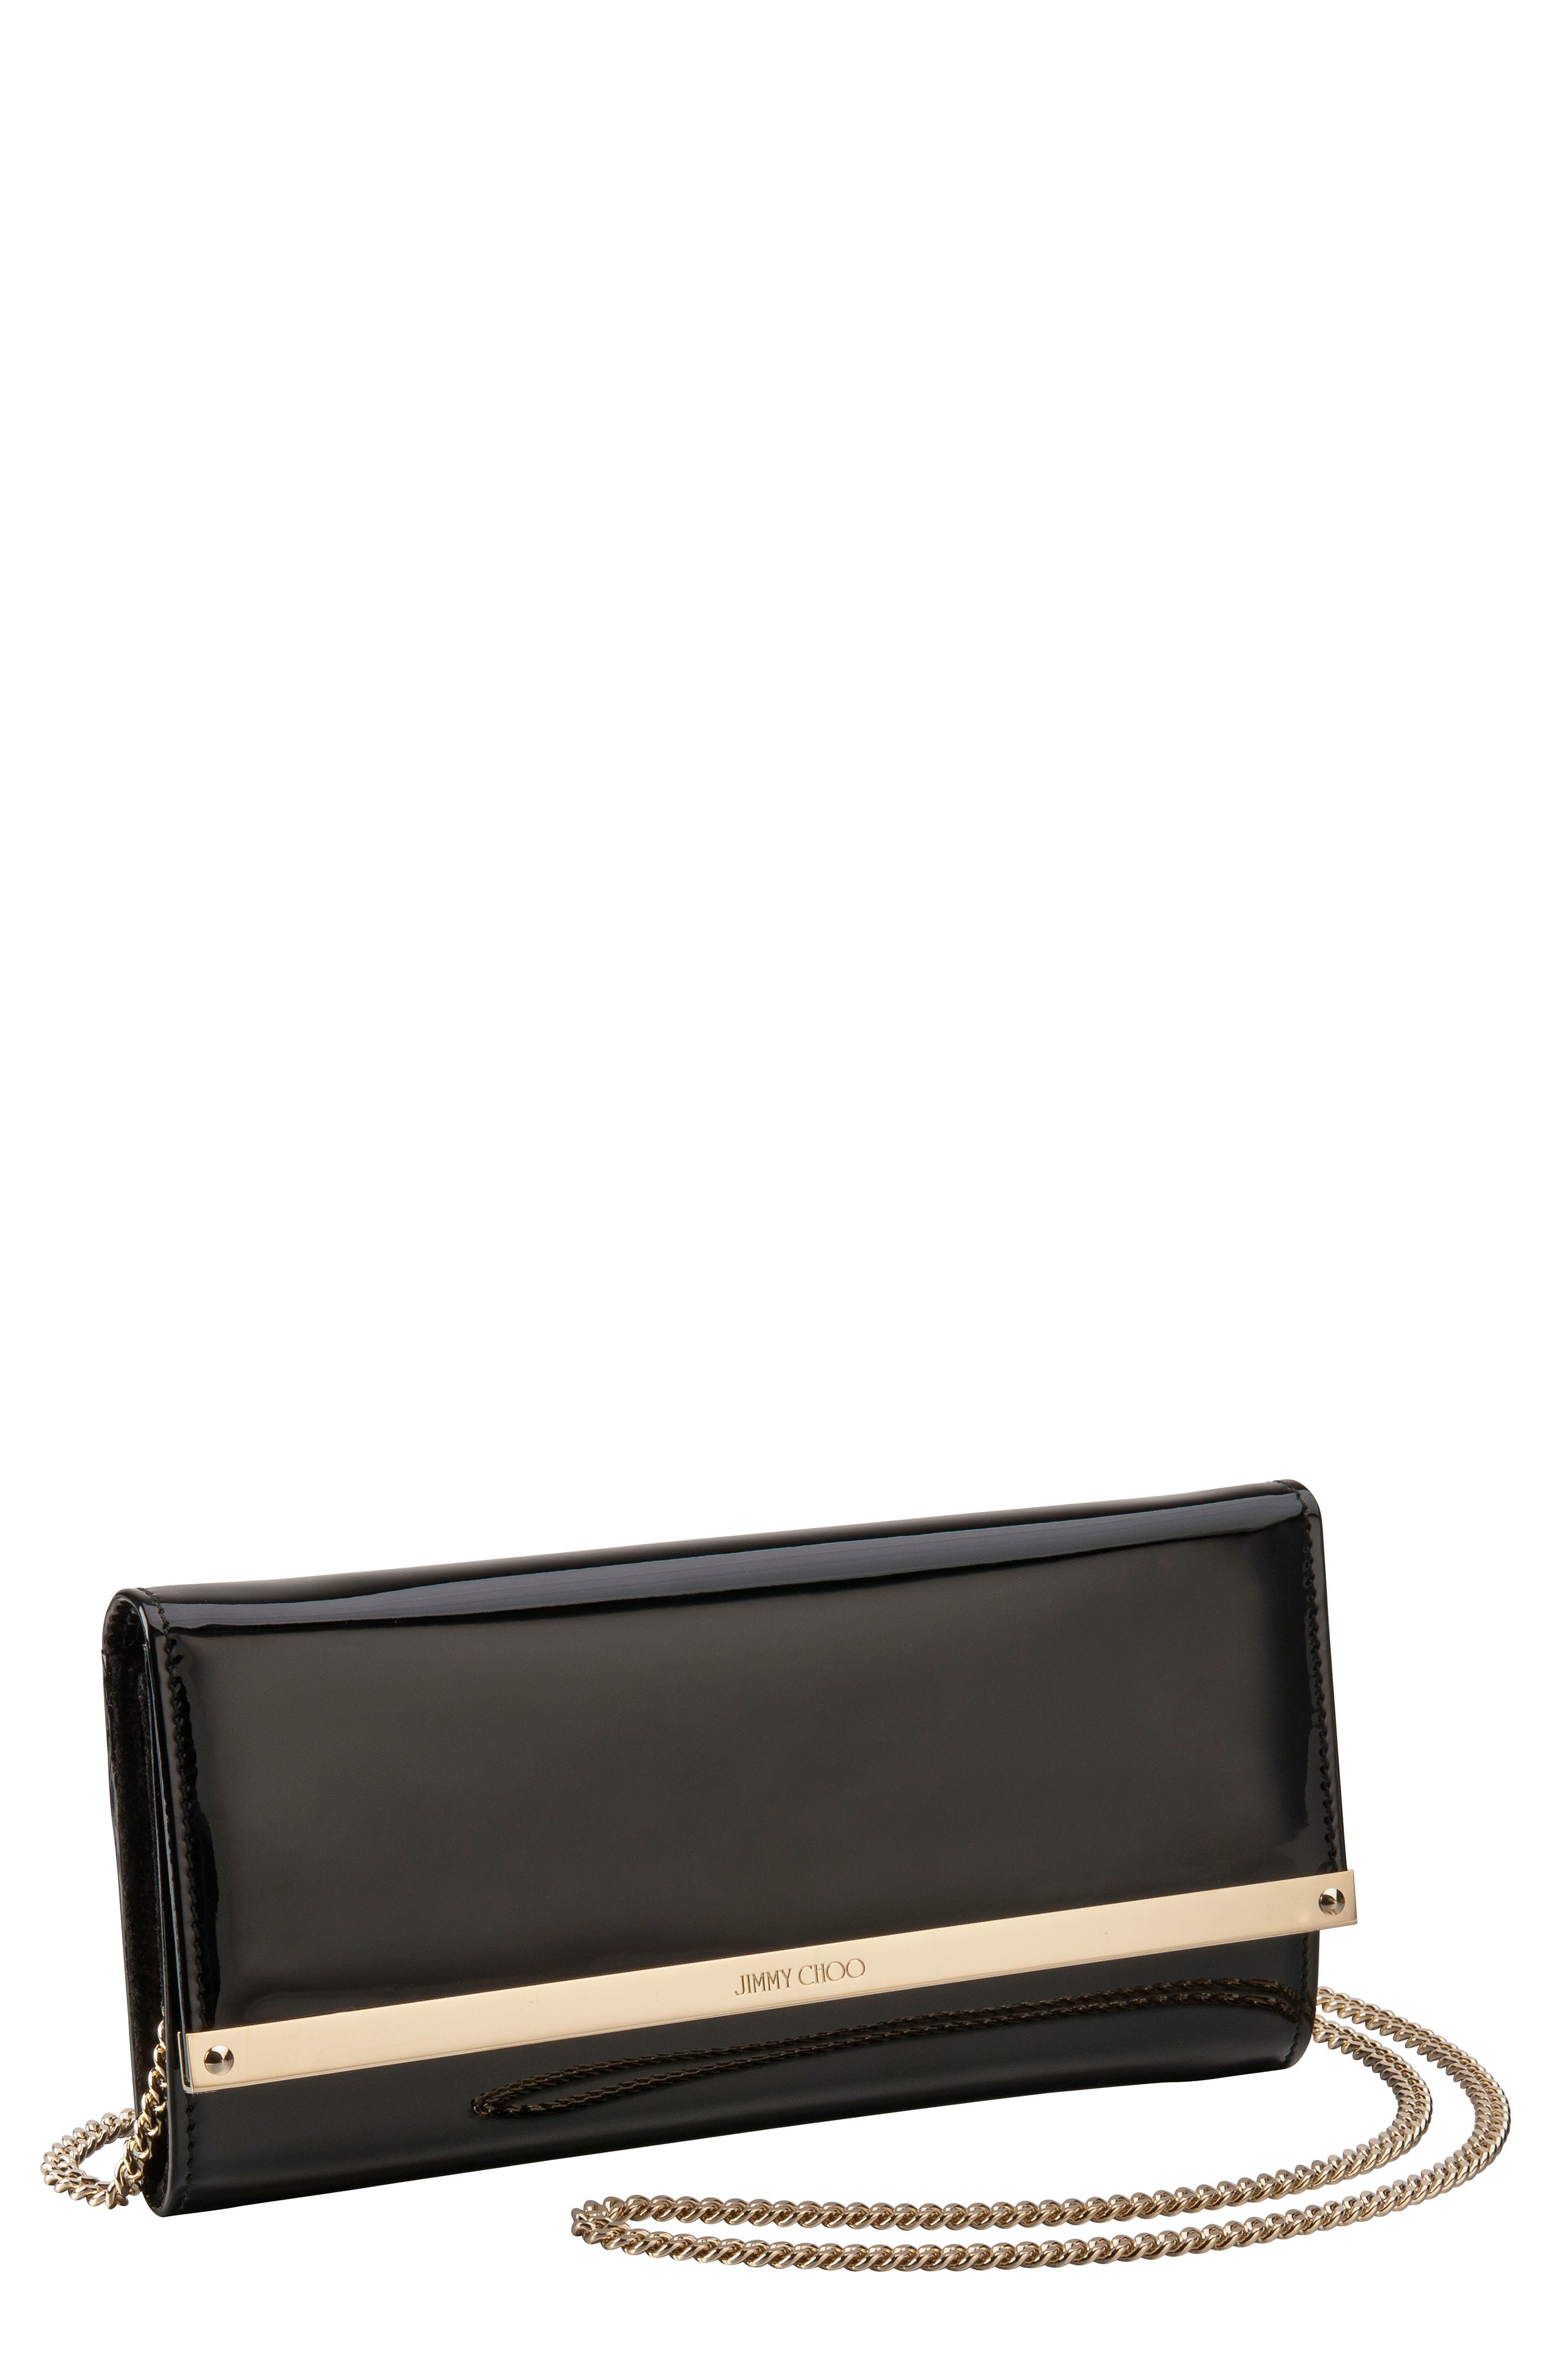 Alternate Image 1 Selected - Jimmy Choo Milla Leather Wallet on a Chain